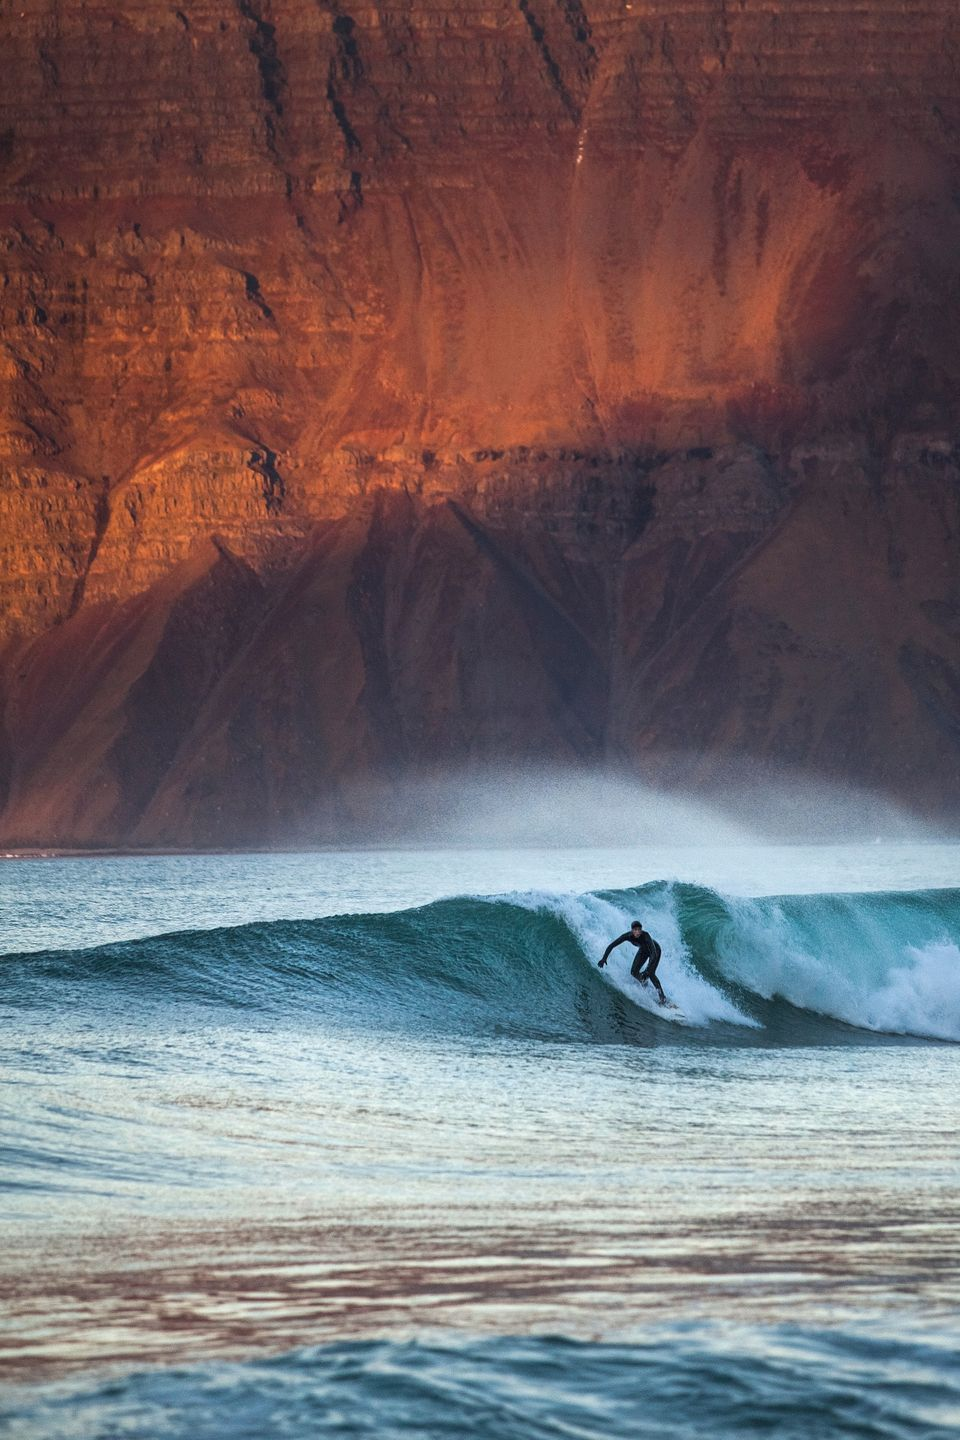 More surfing destinations: Although the water's chilly year-round, surfers still gravitate to the Reykjanes Peninsula near Iceland's capital of Reykjavik.